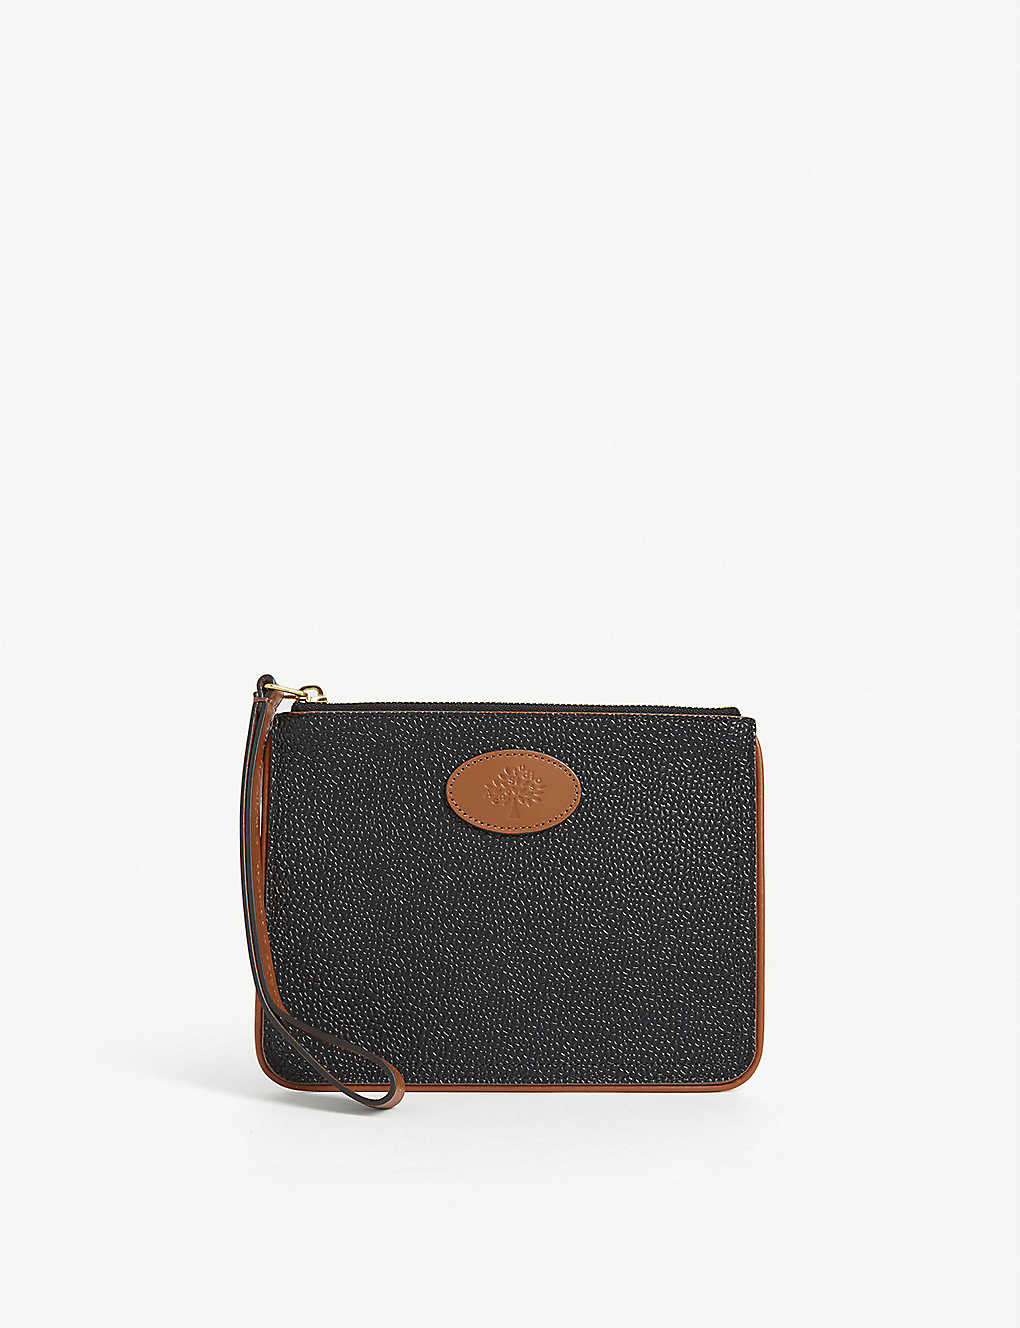 MULBERRY: Mulberry x Acne Studios leather zip coin purse